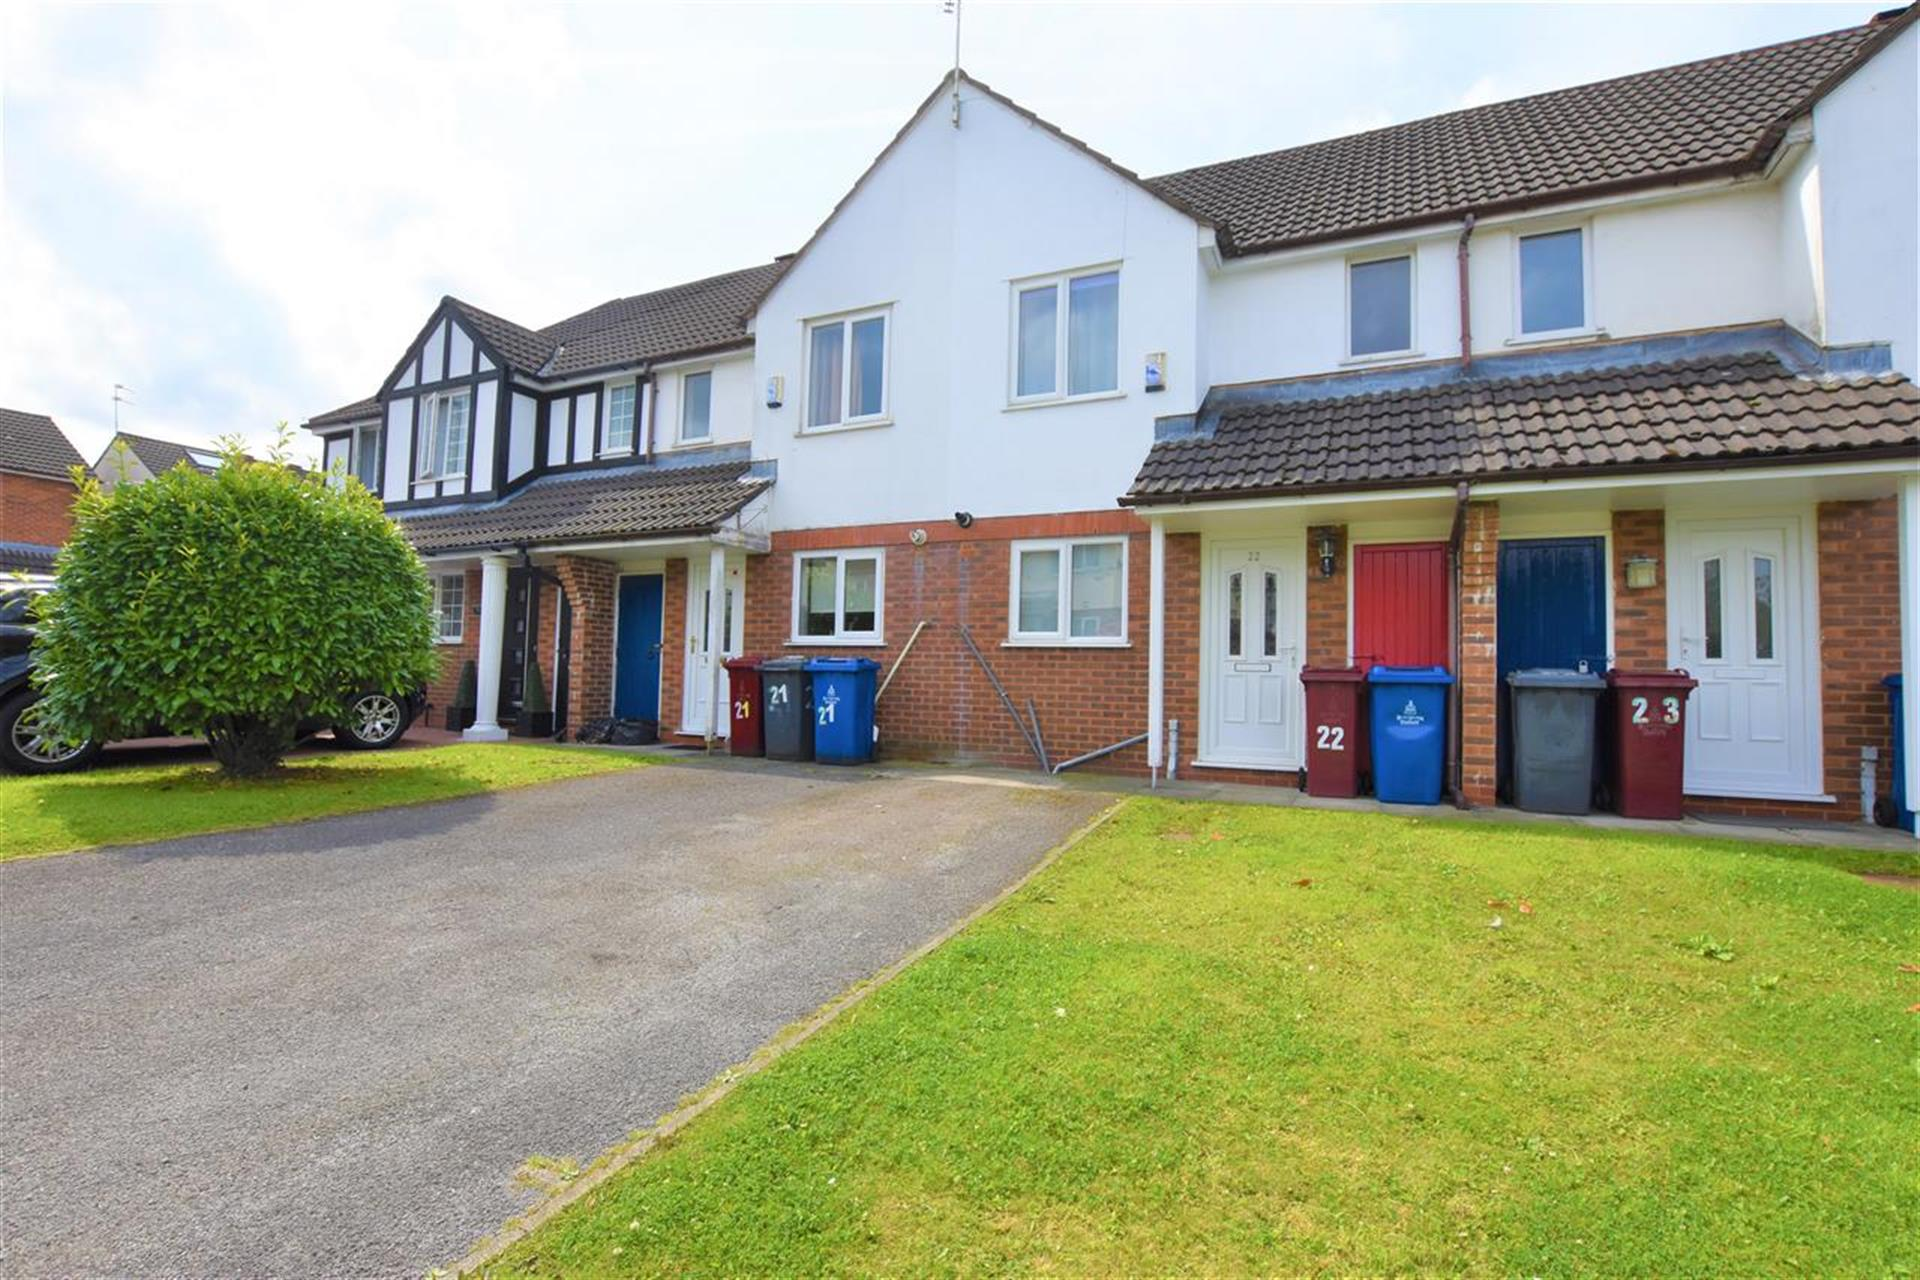 2 Bedroom House For Sale - Main Picture